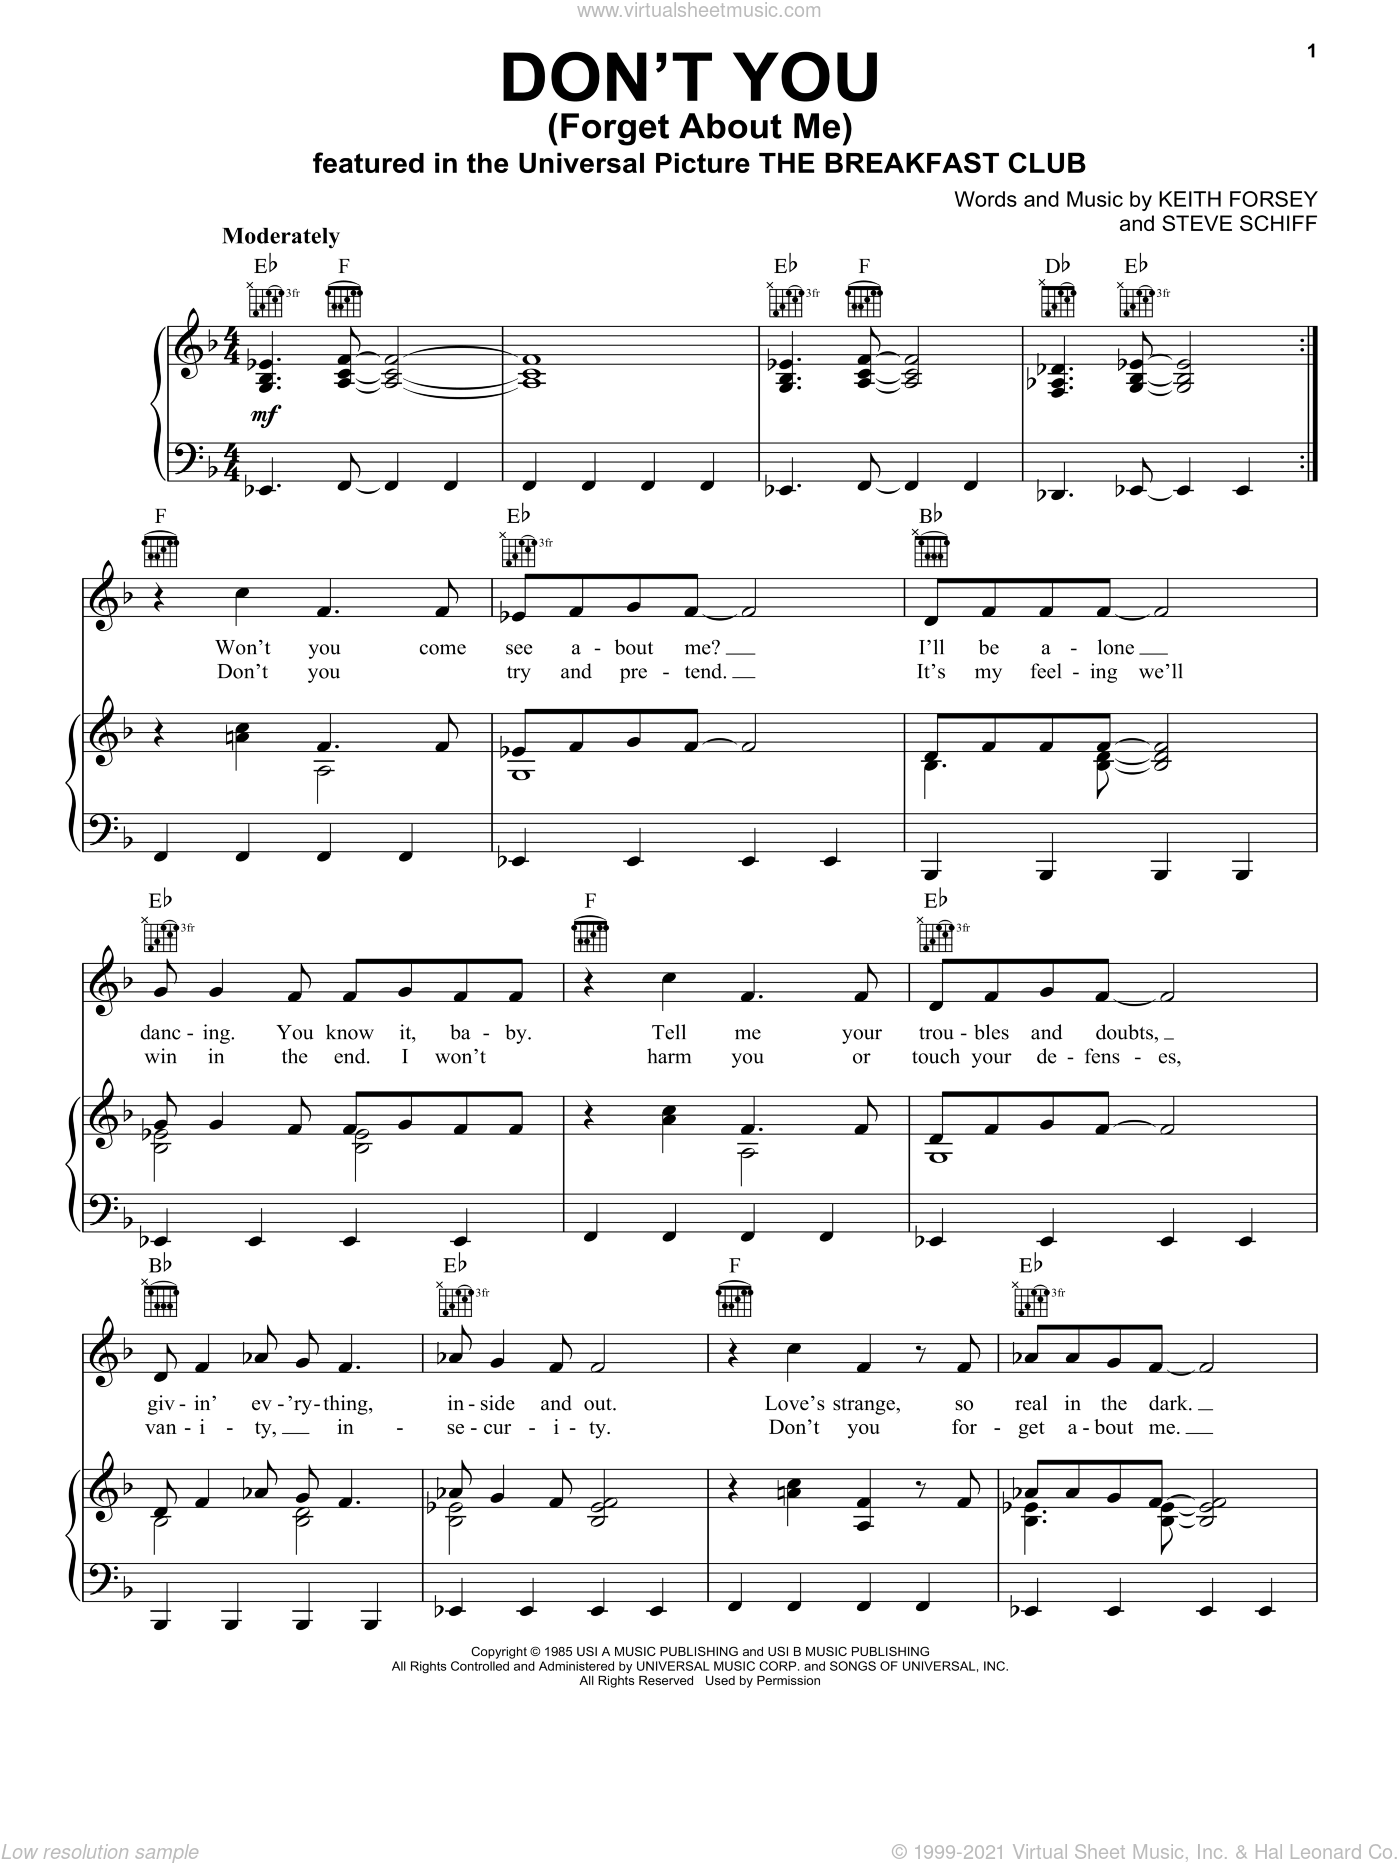 Don't You (Forget About Me) sheet music for voice, piano or guitar by Simple Minds, Keith Forsey and Steve Schiff, intermediate skill level